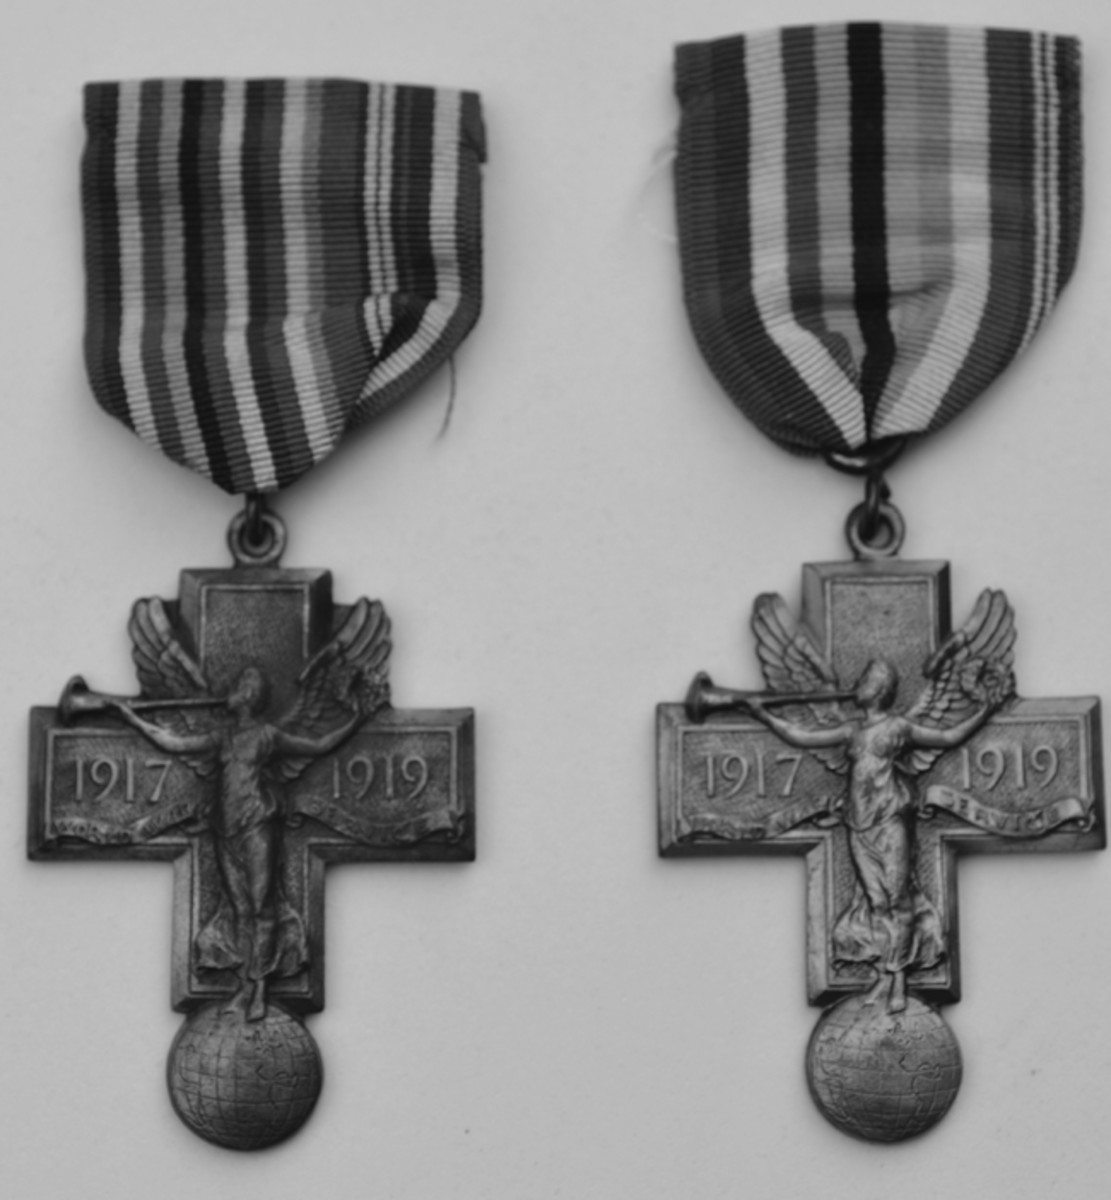 Two local Pittsburgh WWI issued medals were made by Robbins Company, the first for the Zion Evangelical Church (left) and the other for the Pittsburgh Power Piping Company. Both were issued on Allied colored ribbon variants.